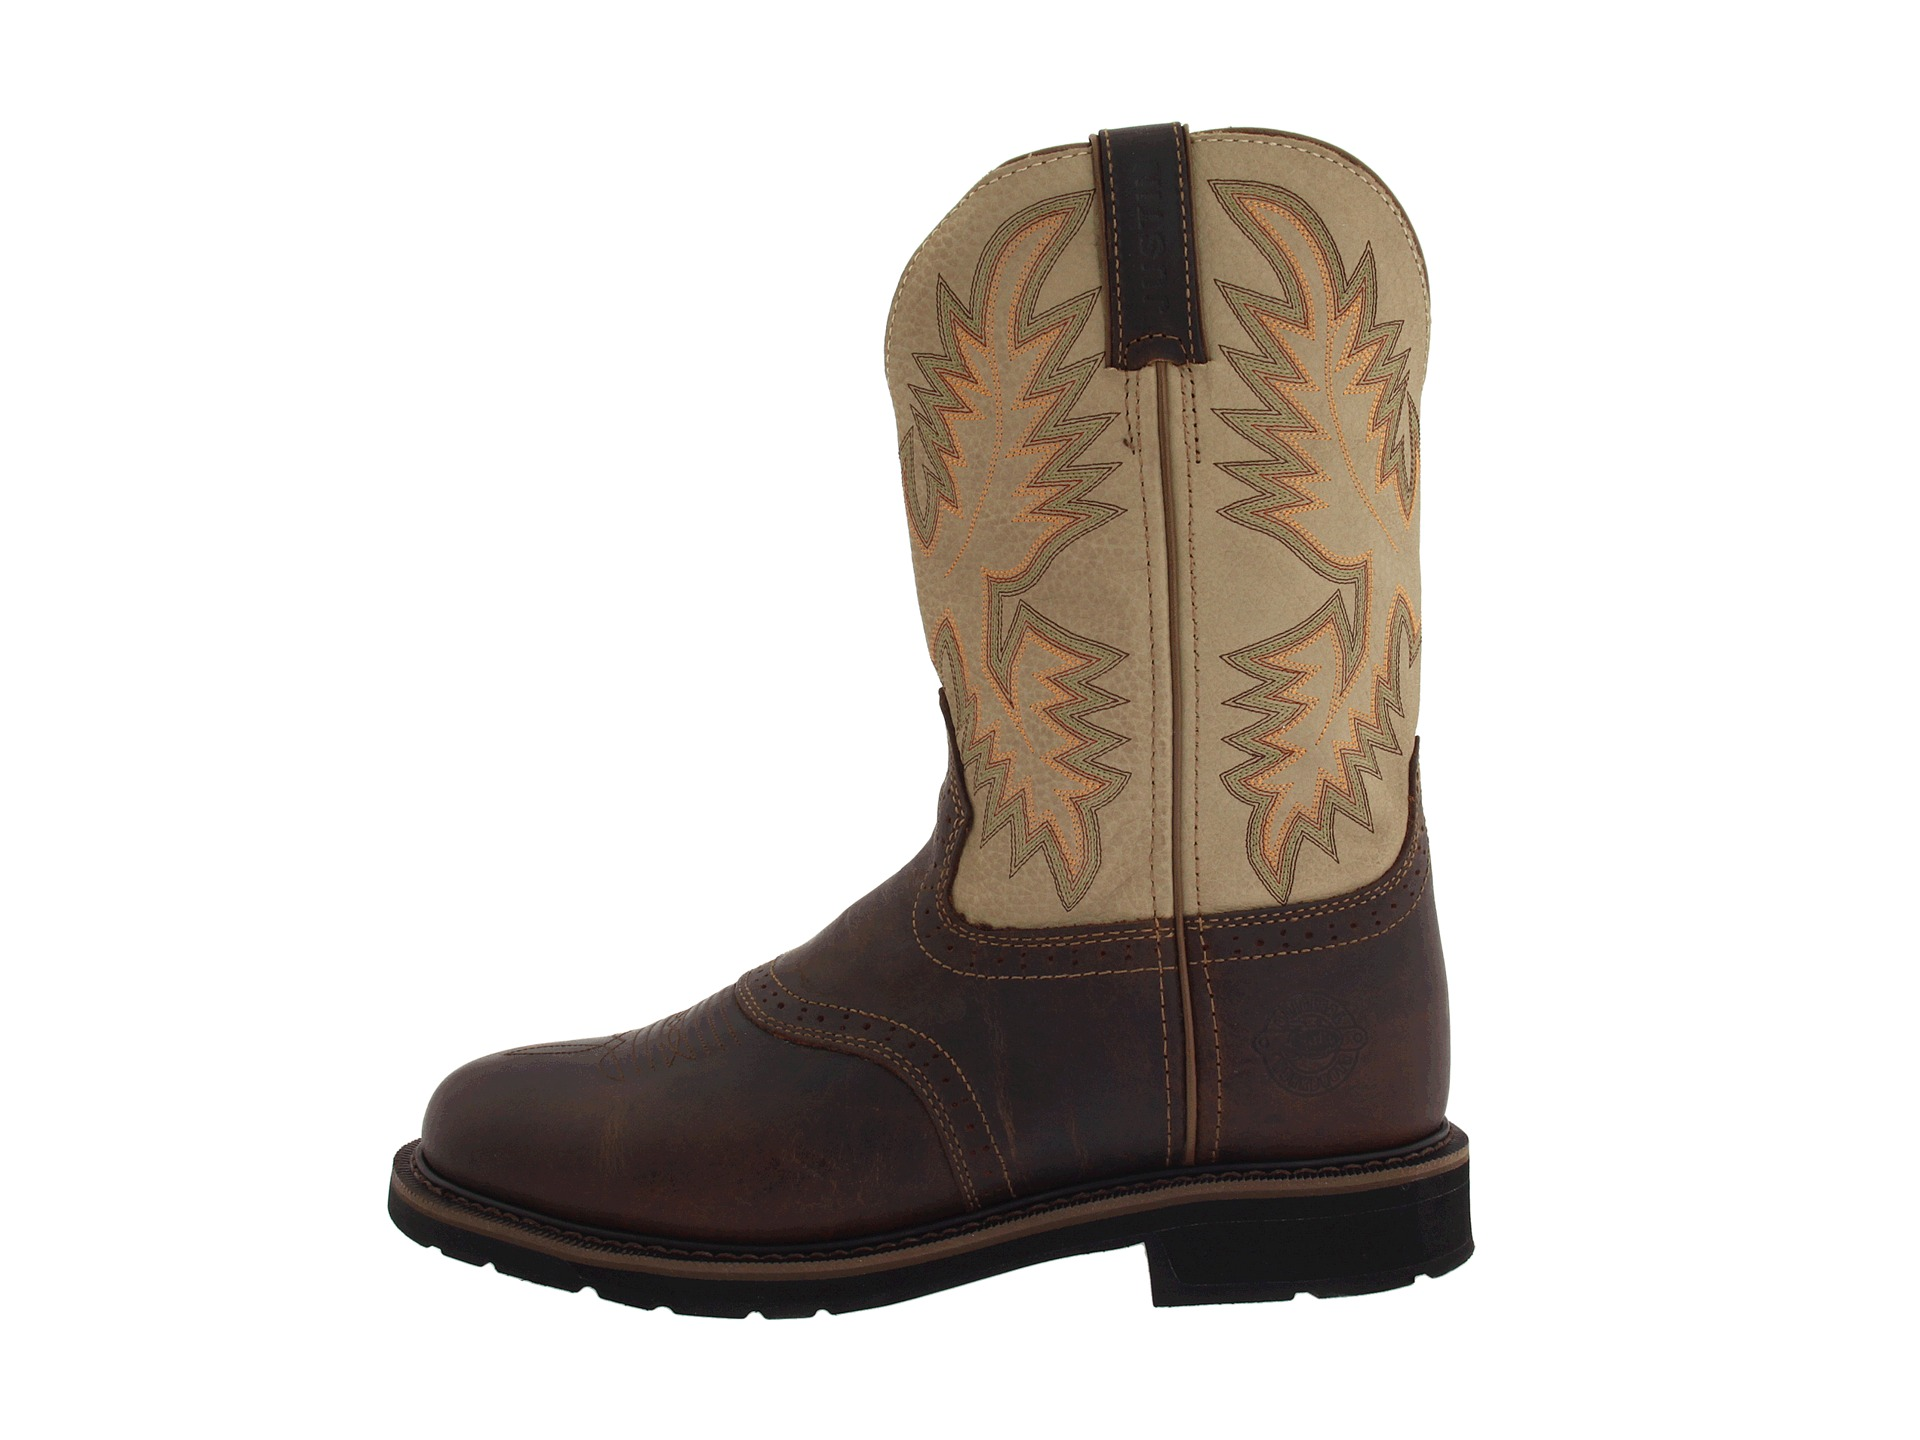 Justin Wk4660 11 Quot Work Boot Zappos Com Free Shipping